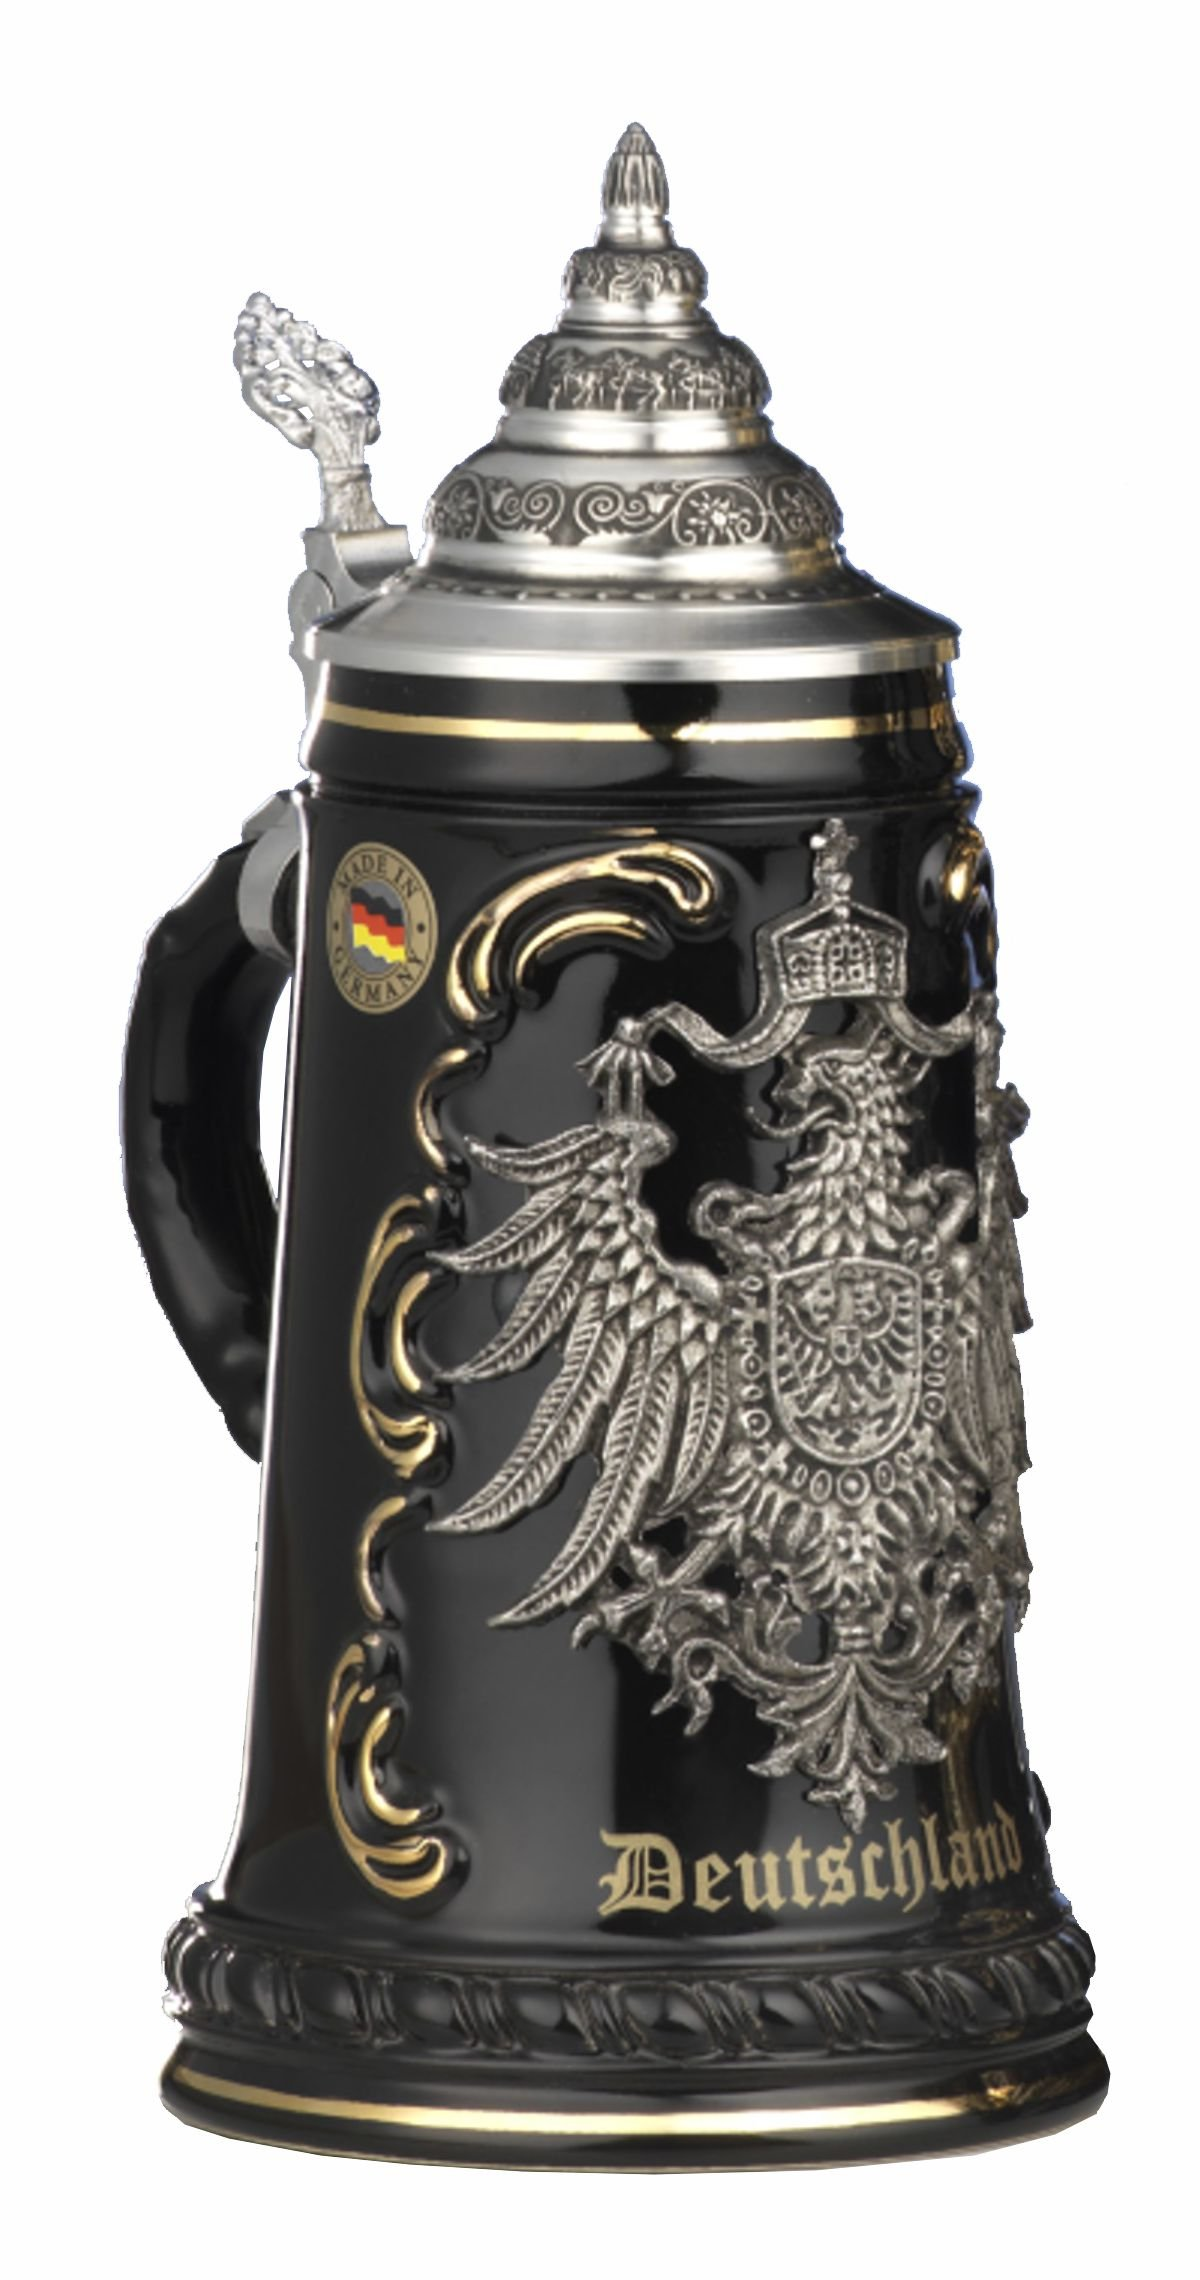 German Beer Stein black Deutschland pewter eagle Stein 0.5 liter tankard, beer mug KI 415-SZA 0,5L Deutschland